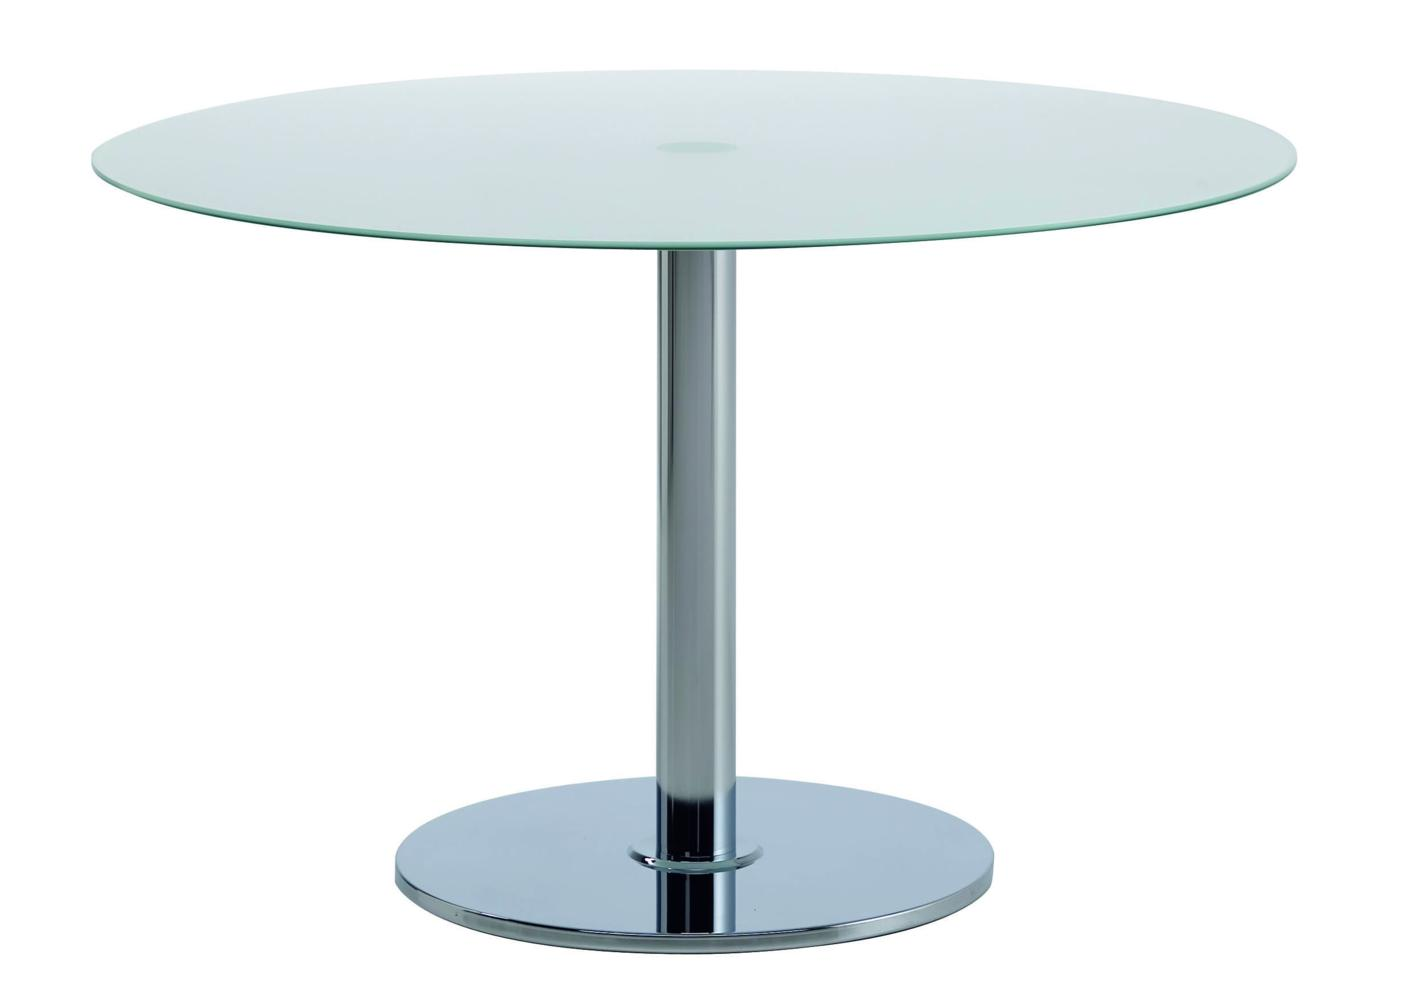 Table ronde bois massif pied central id e for Prix isolation par soufflage